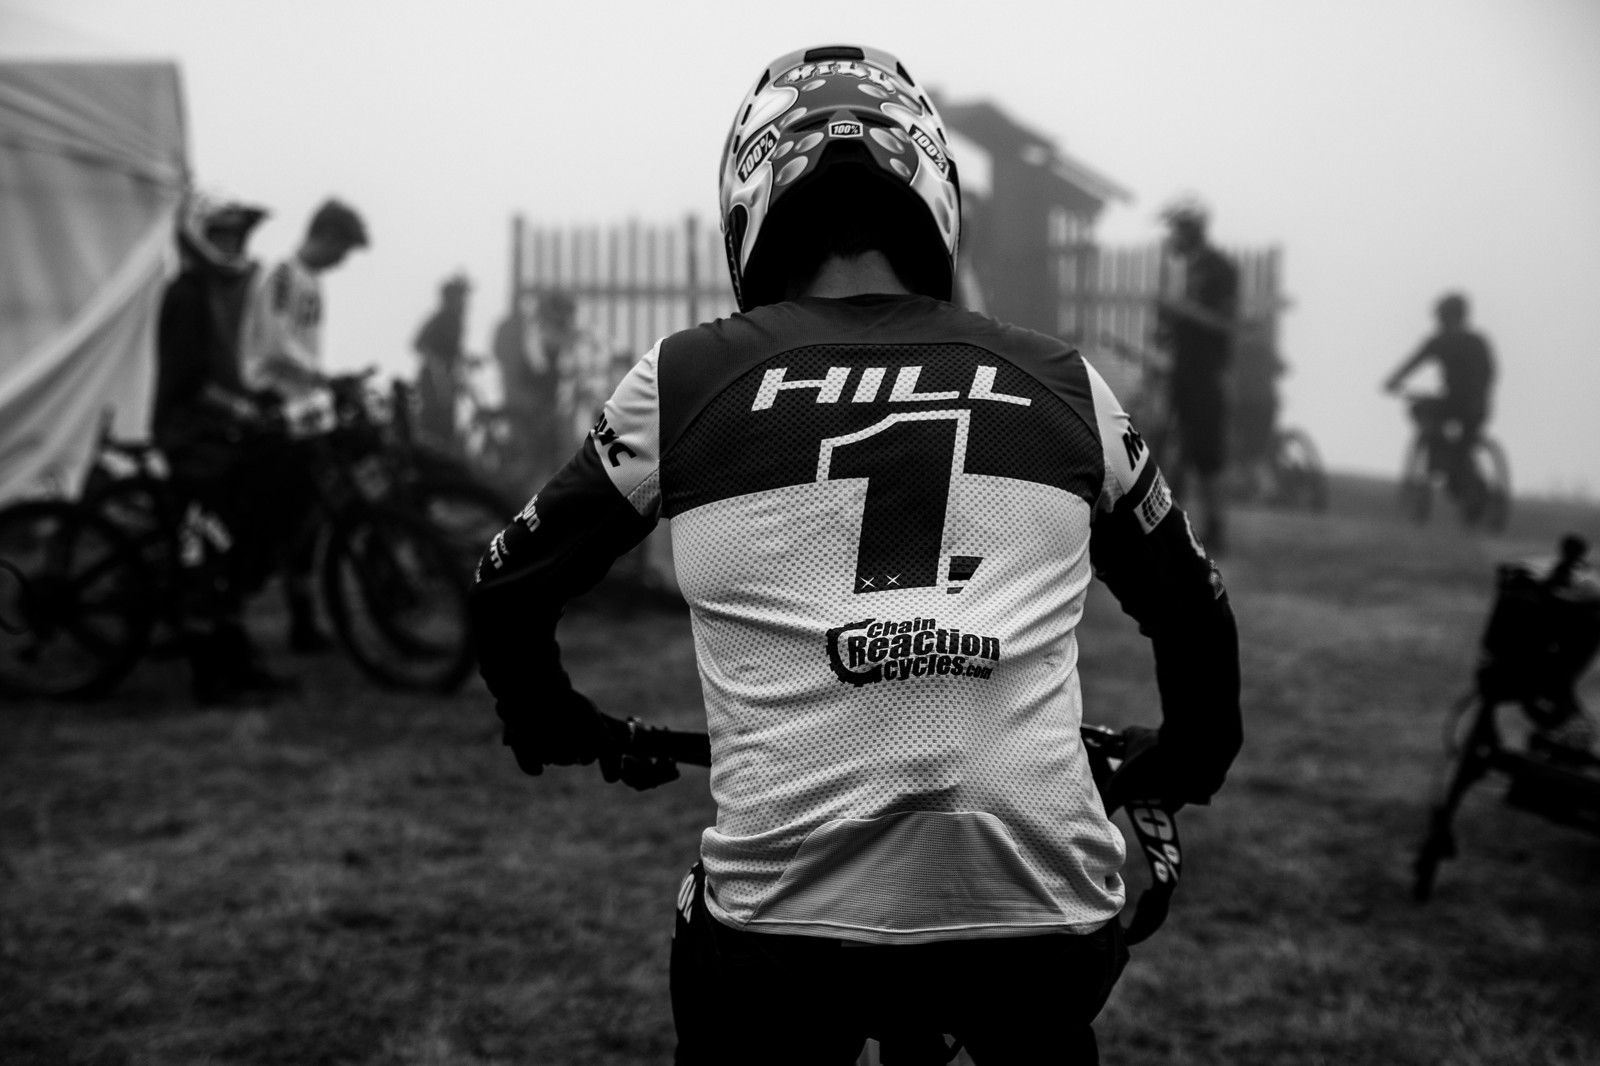 Sam Hill - 2019 Enduro World Series Crankworx Rotorua - Mountain Biking Pictures - Vital MTB